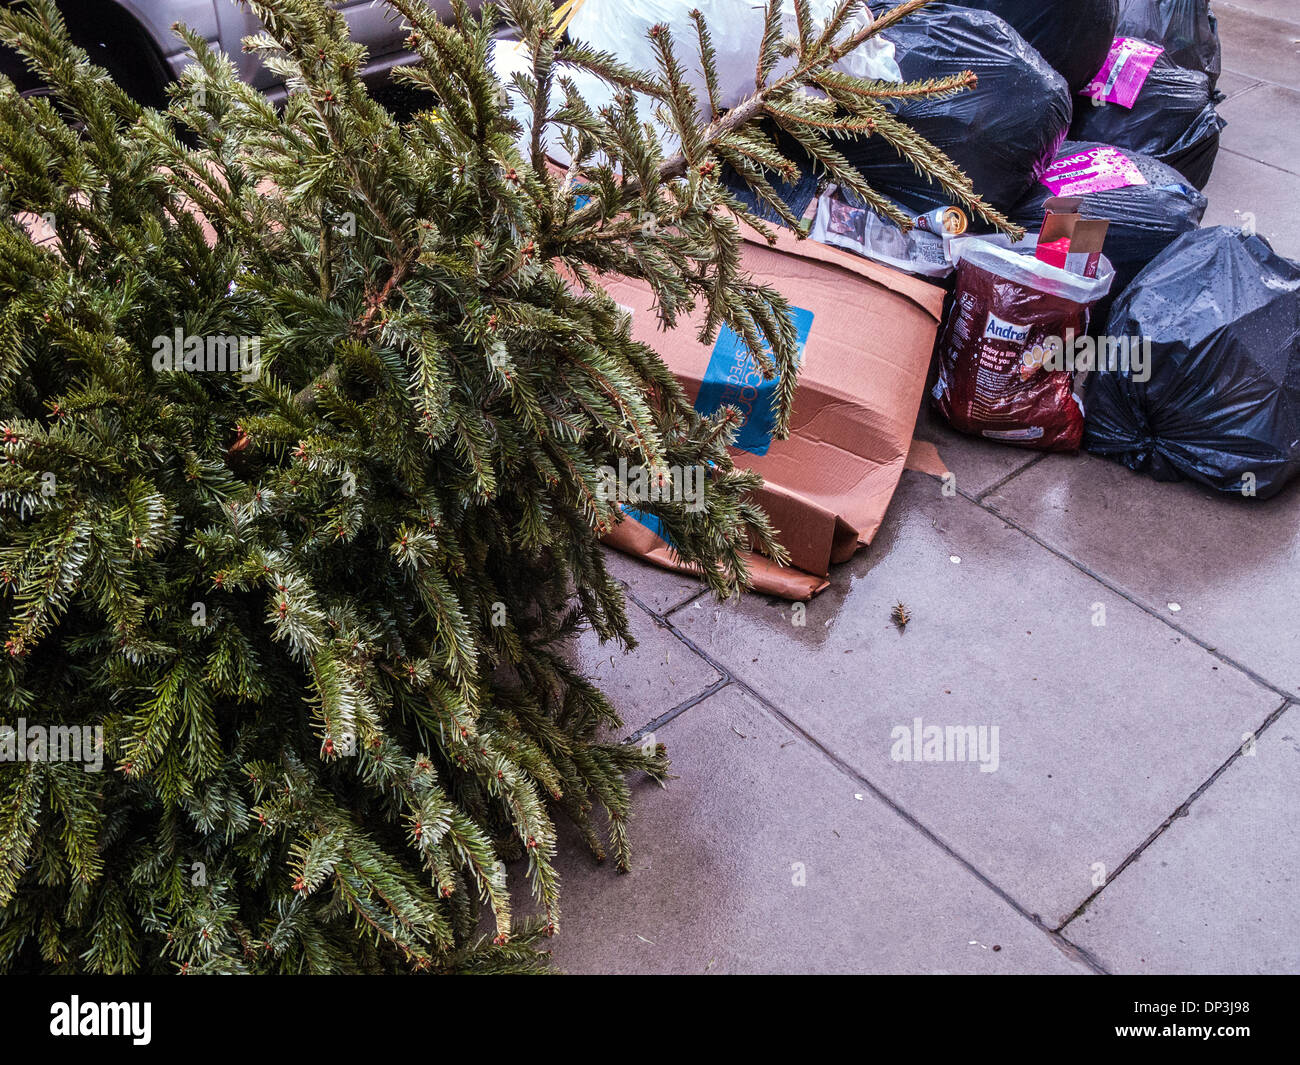 Christmas Tree Recycling Stock Photos & Christmas Tree Recycling ...